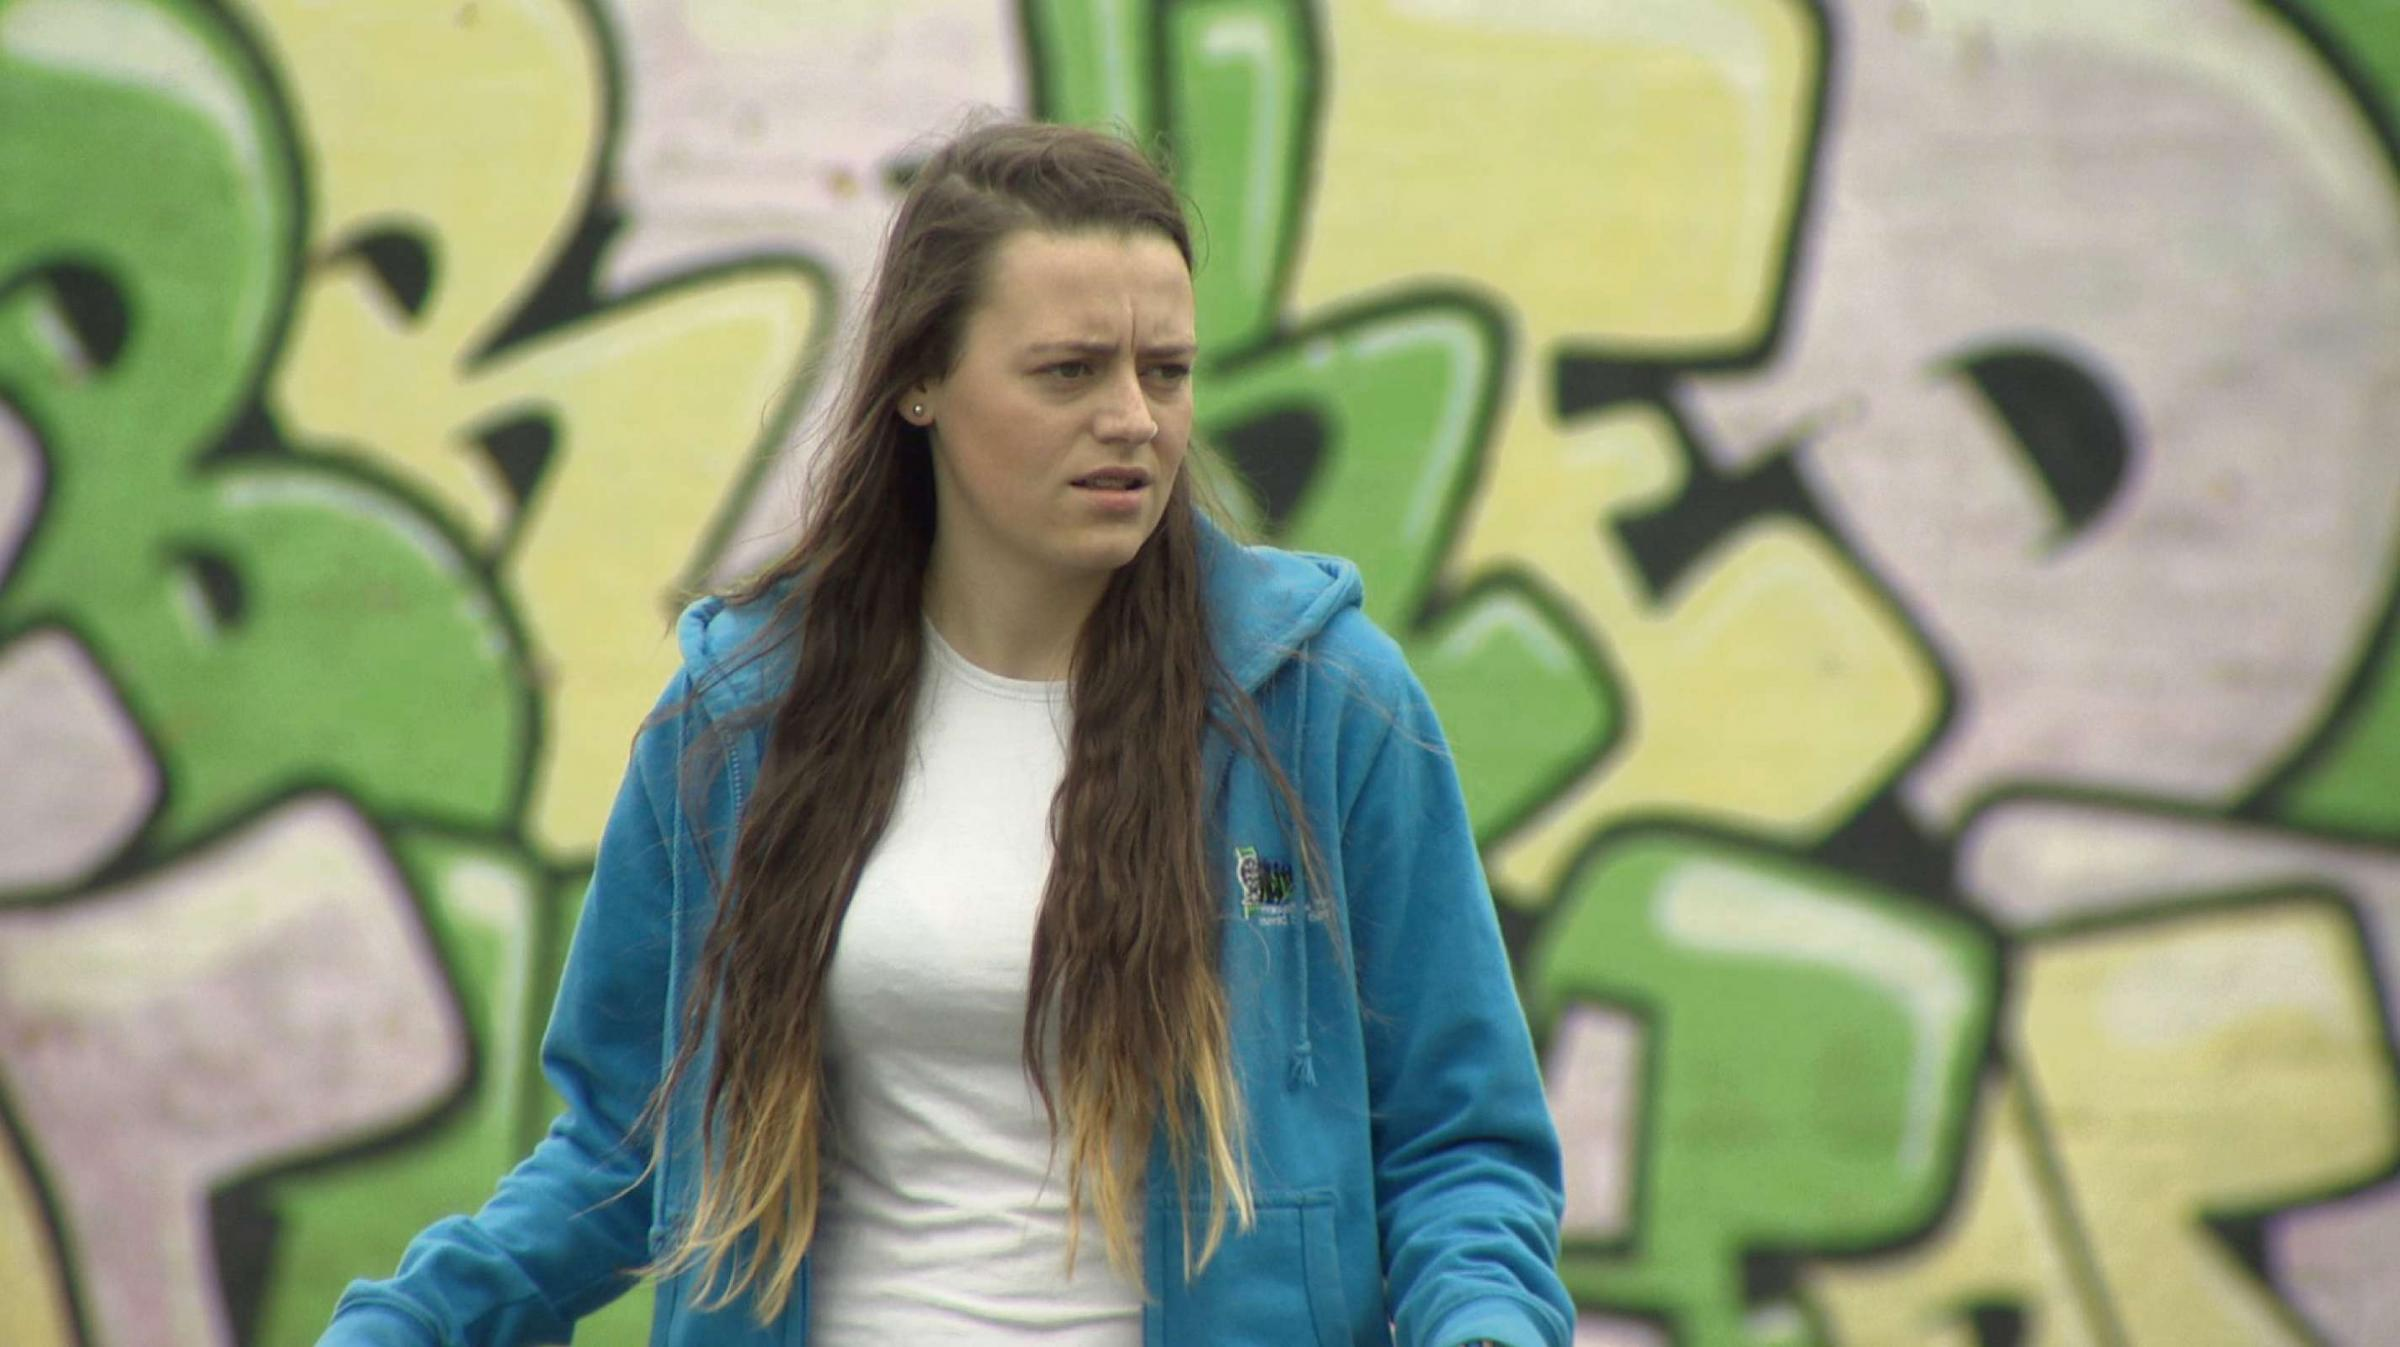 TACKLING BULLYING: Taylor Macleod's work on bullying will feature on ITV Wales news at 6pm today (Thursday, June 5). (6834229)